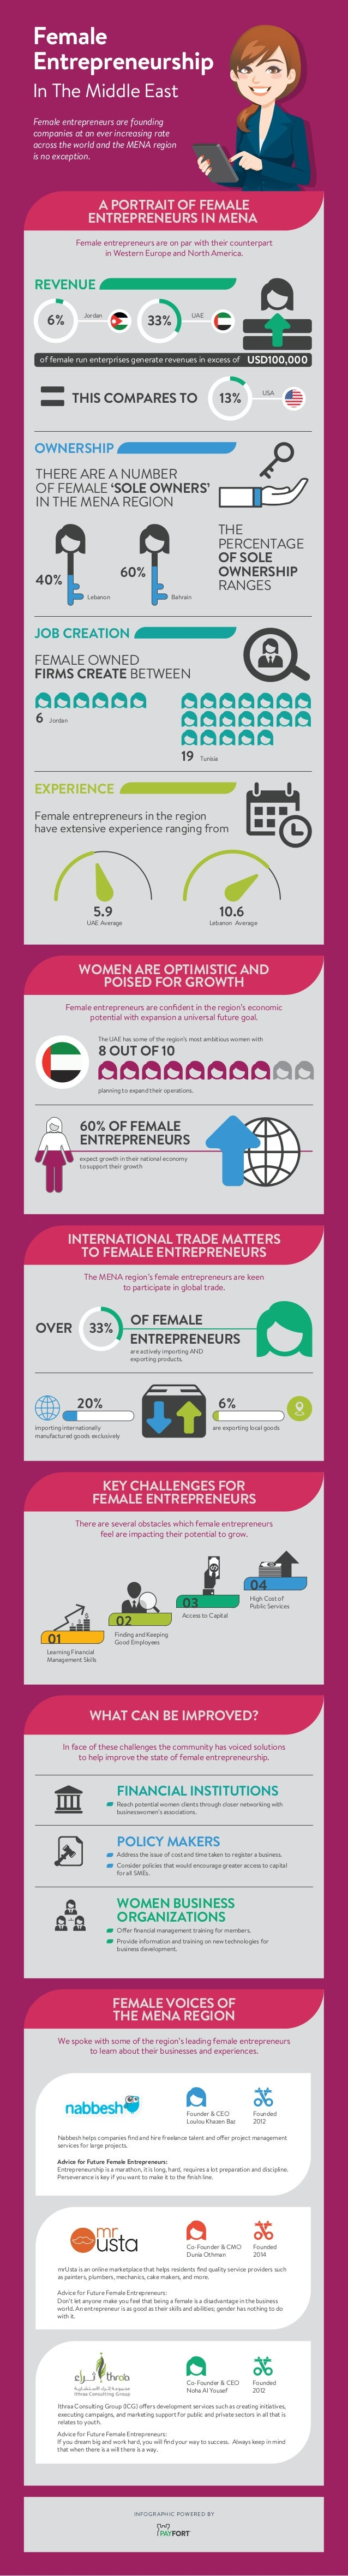 In The Middle East Female Entrepreneurship Female entrepreneurs are founding companies at an ever increasing rate across t...